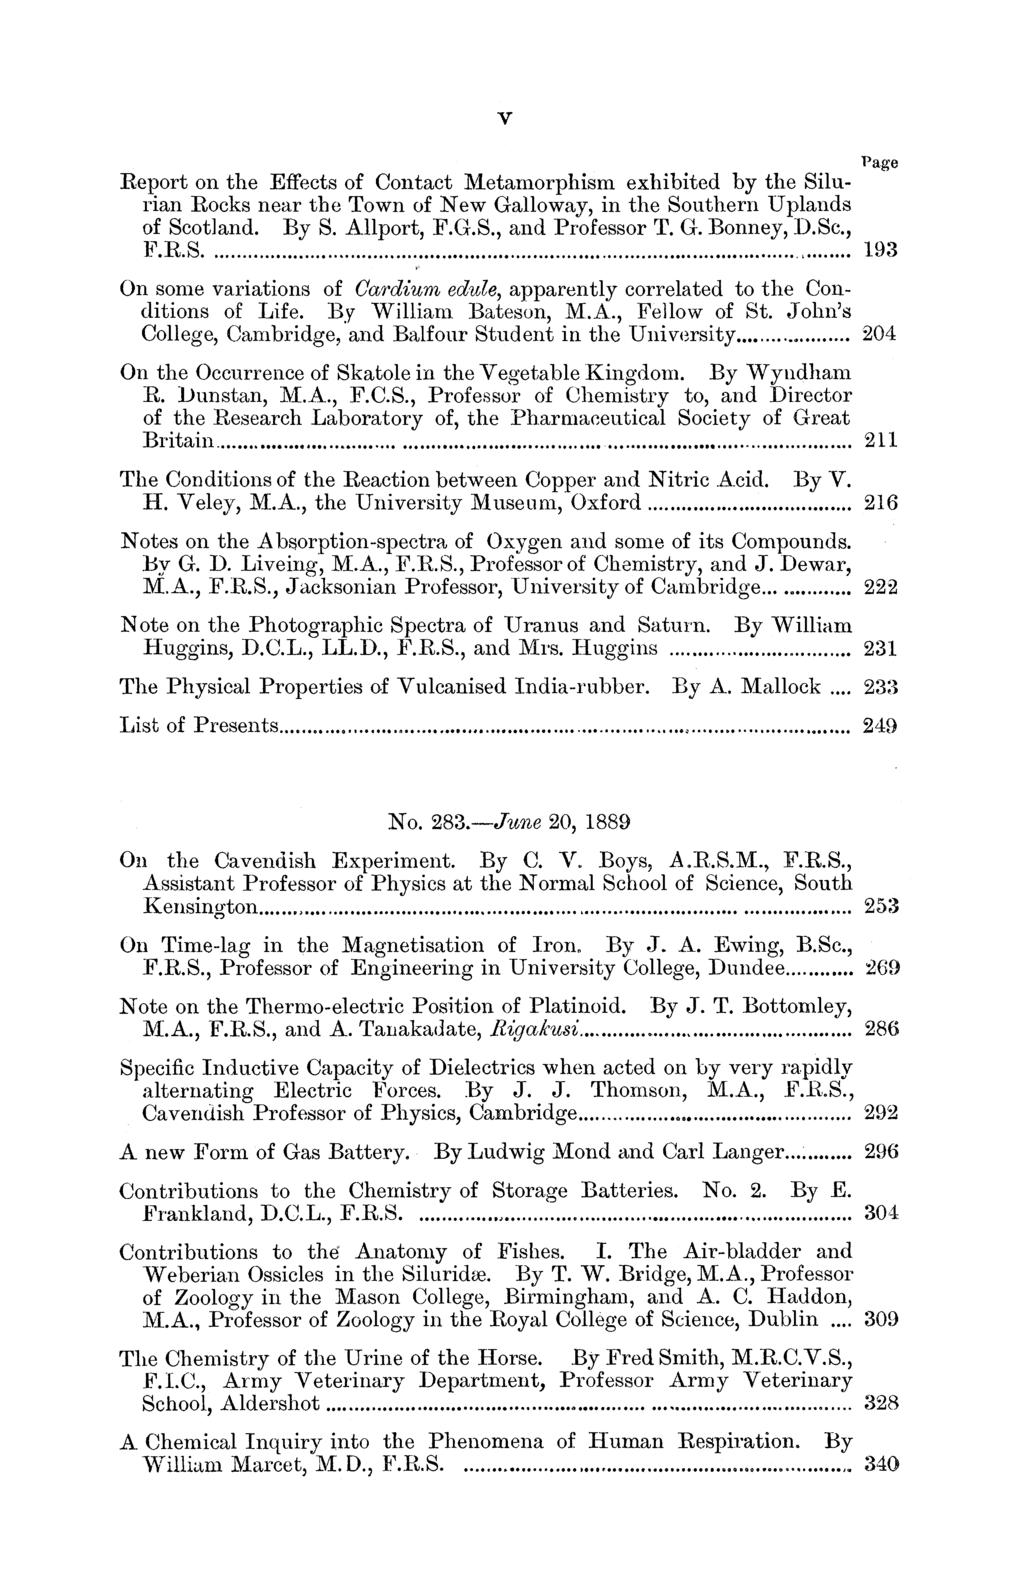 v Page Report on the Effects of Contact Metamorphism exhibited by the Silurian Rocks near the Town of New Galloway, in the Southern Uplands of Scotland. By S. Allport, F.G.S., and Professor T. G. Bonney, D.